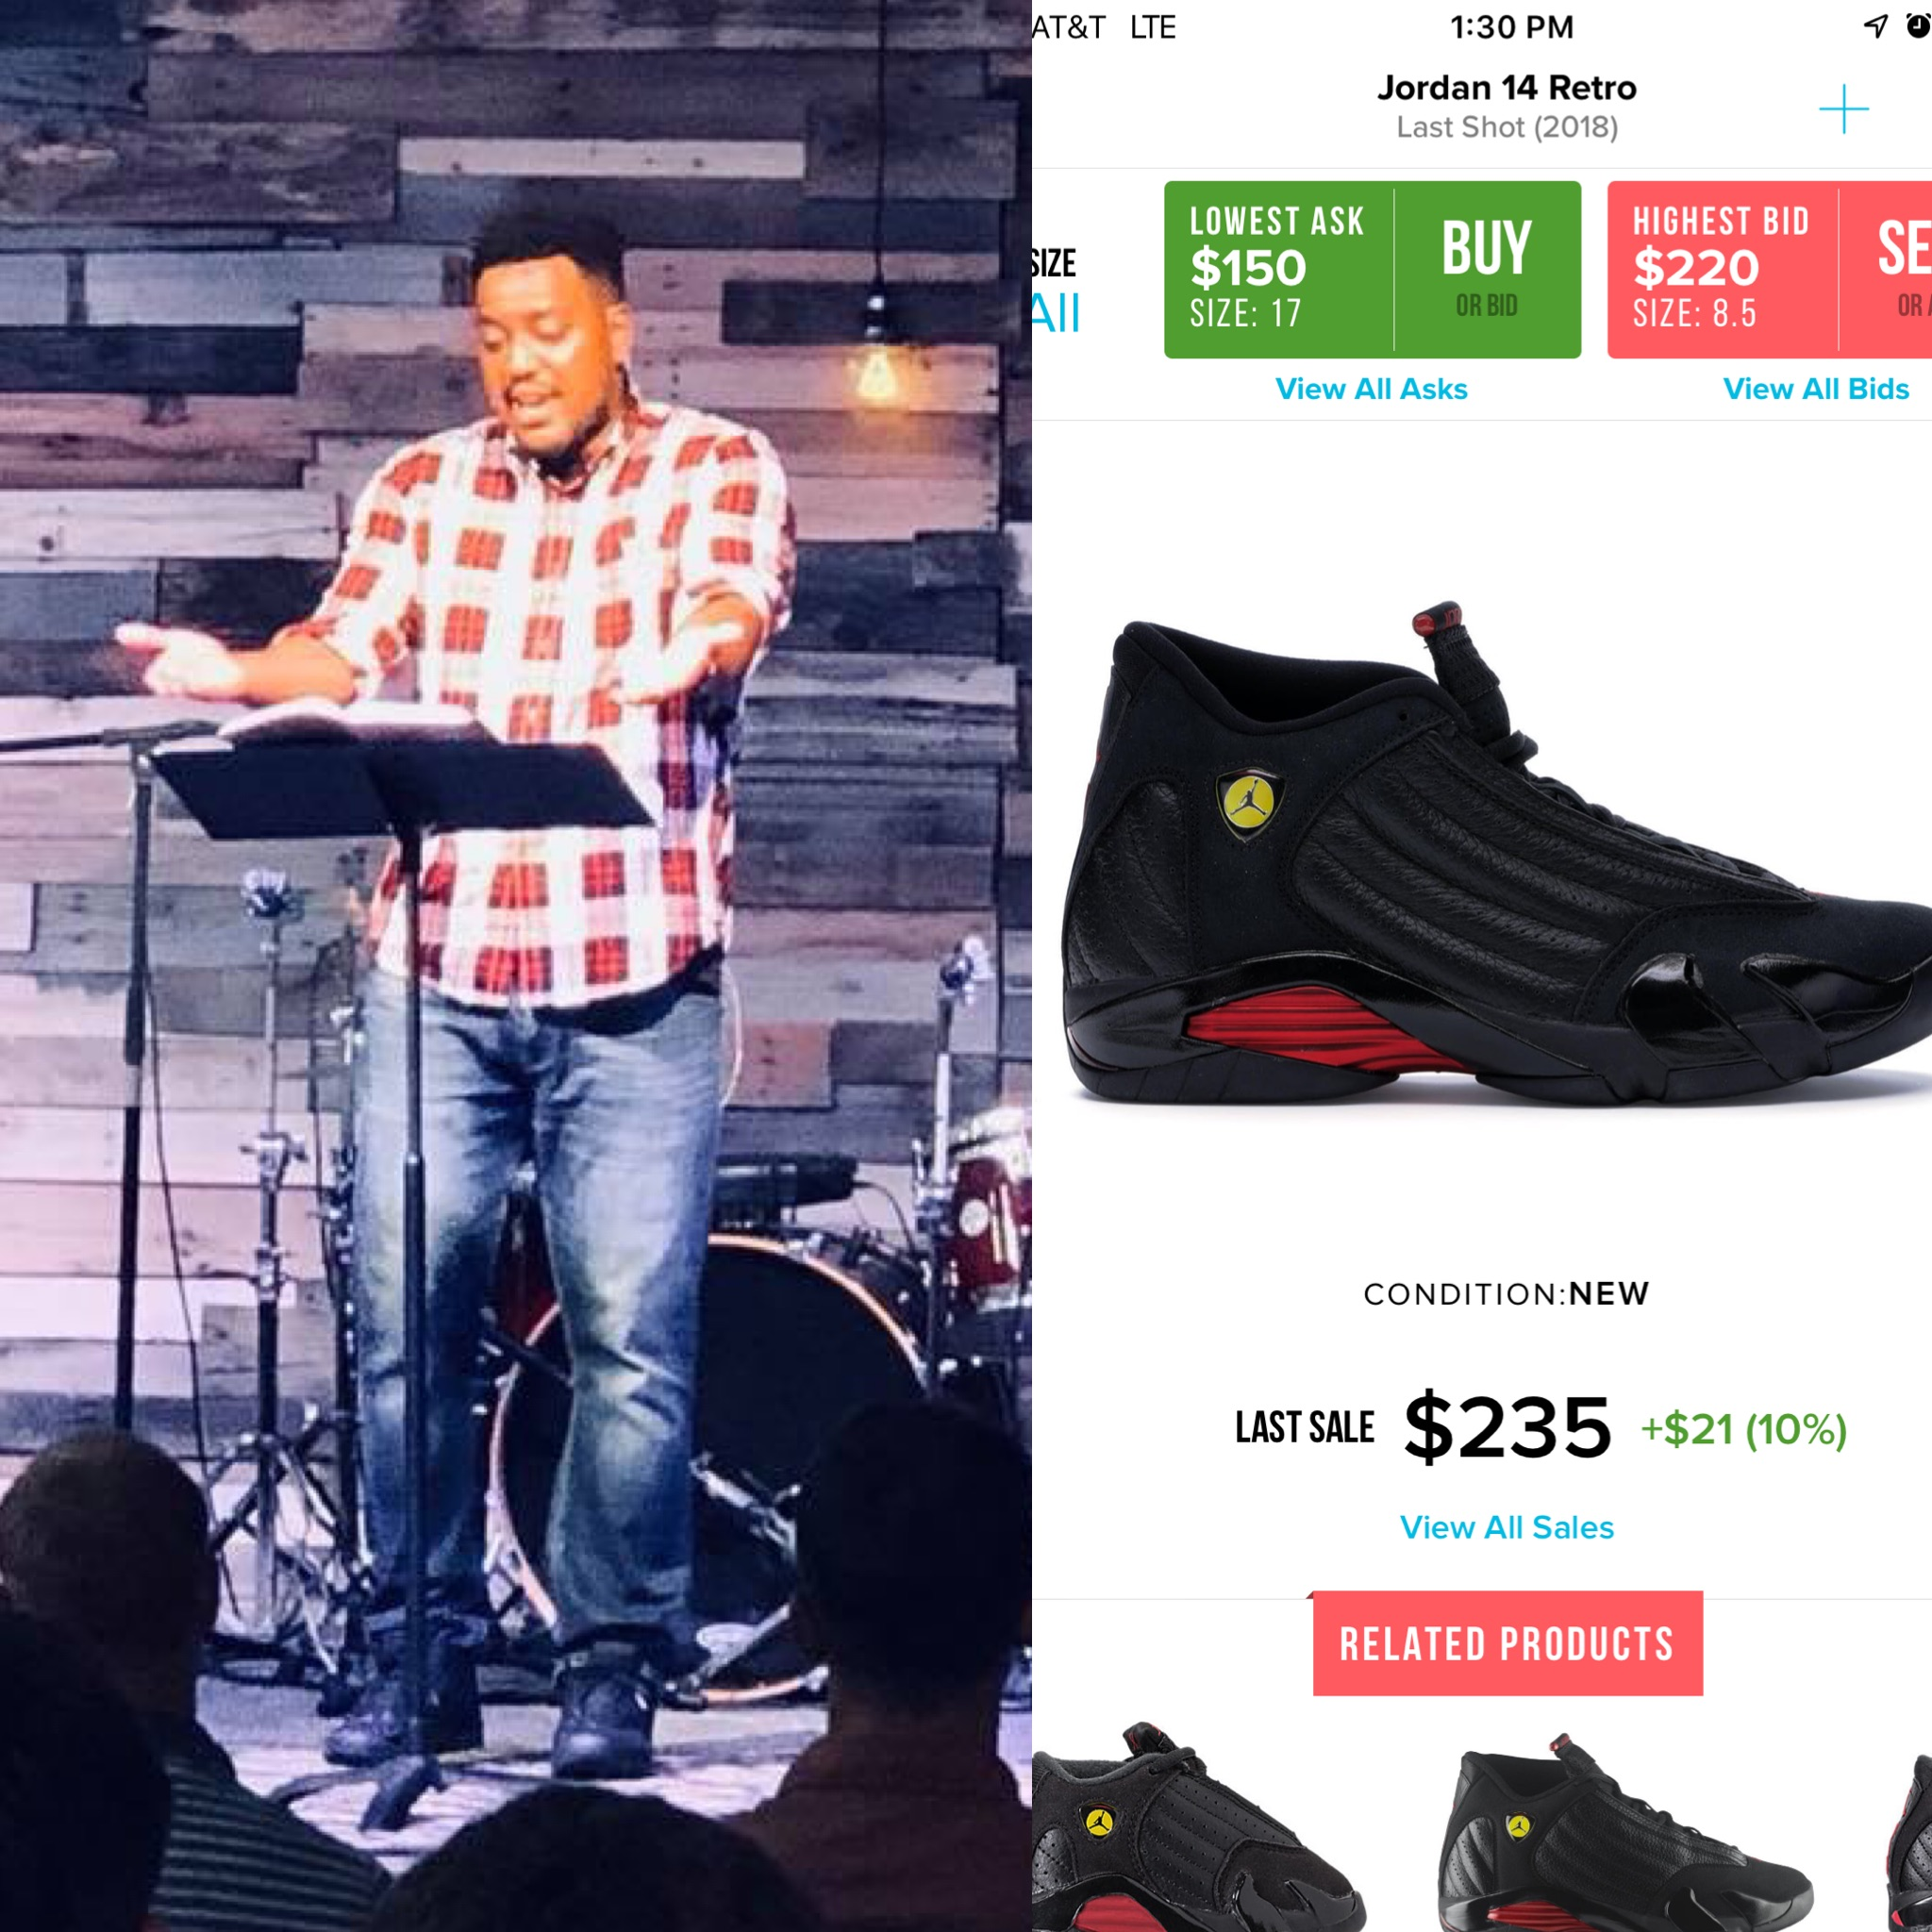 """Check out @brgraves32 in those retro Jordan """"last shot"""" 14's. I didn't pay $235, but they certainly didn't come from Payless ."""